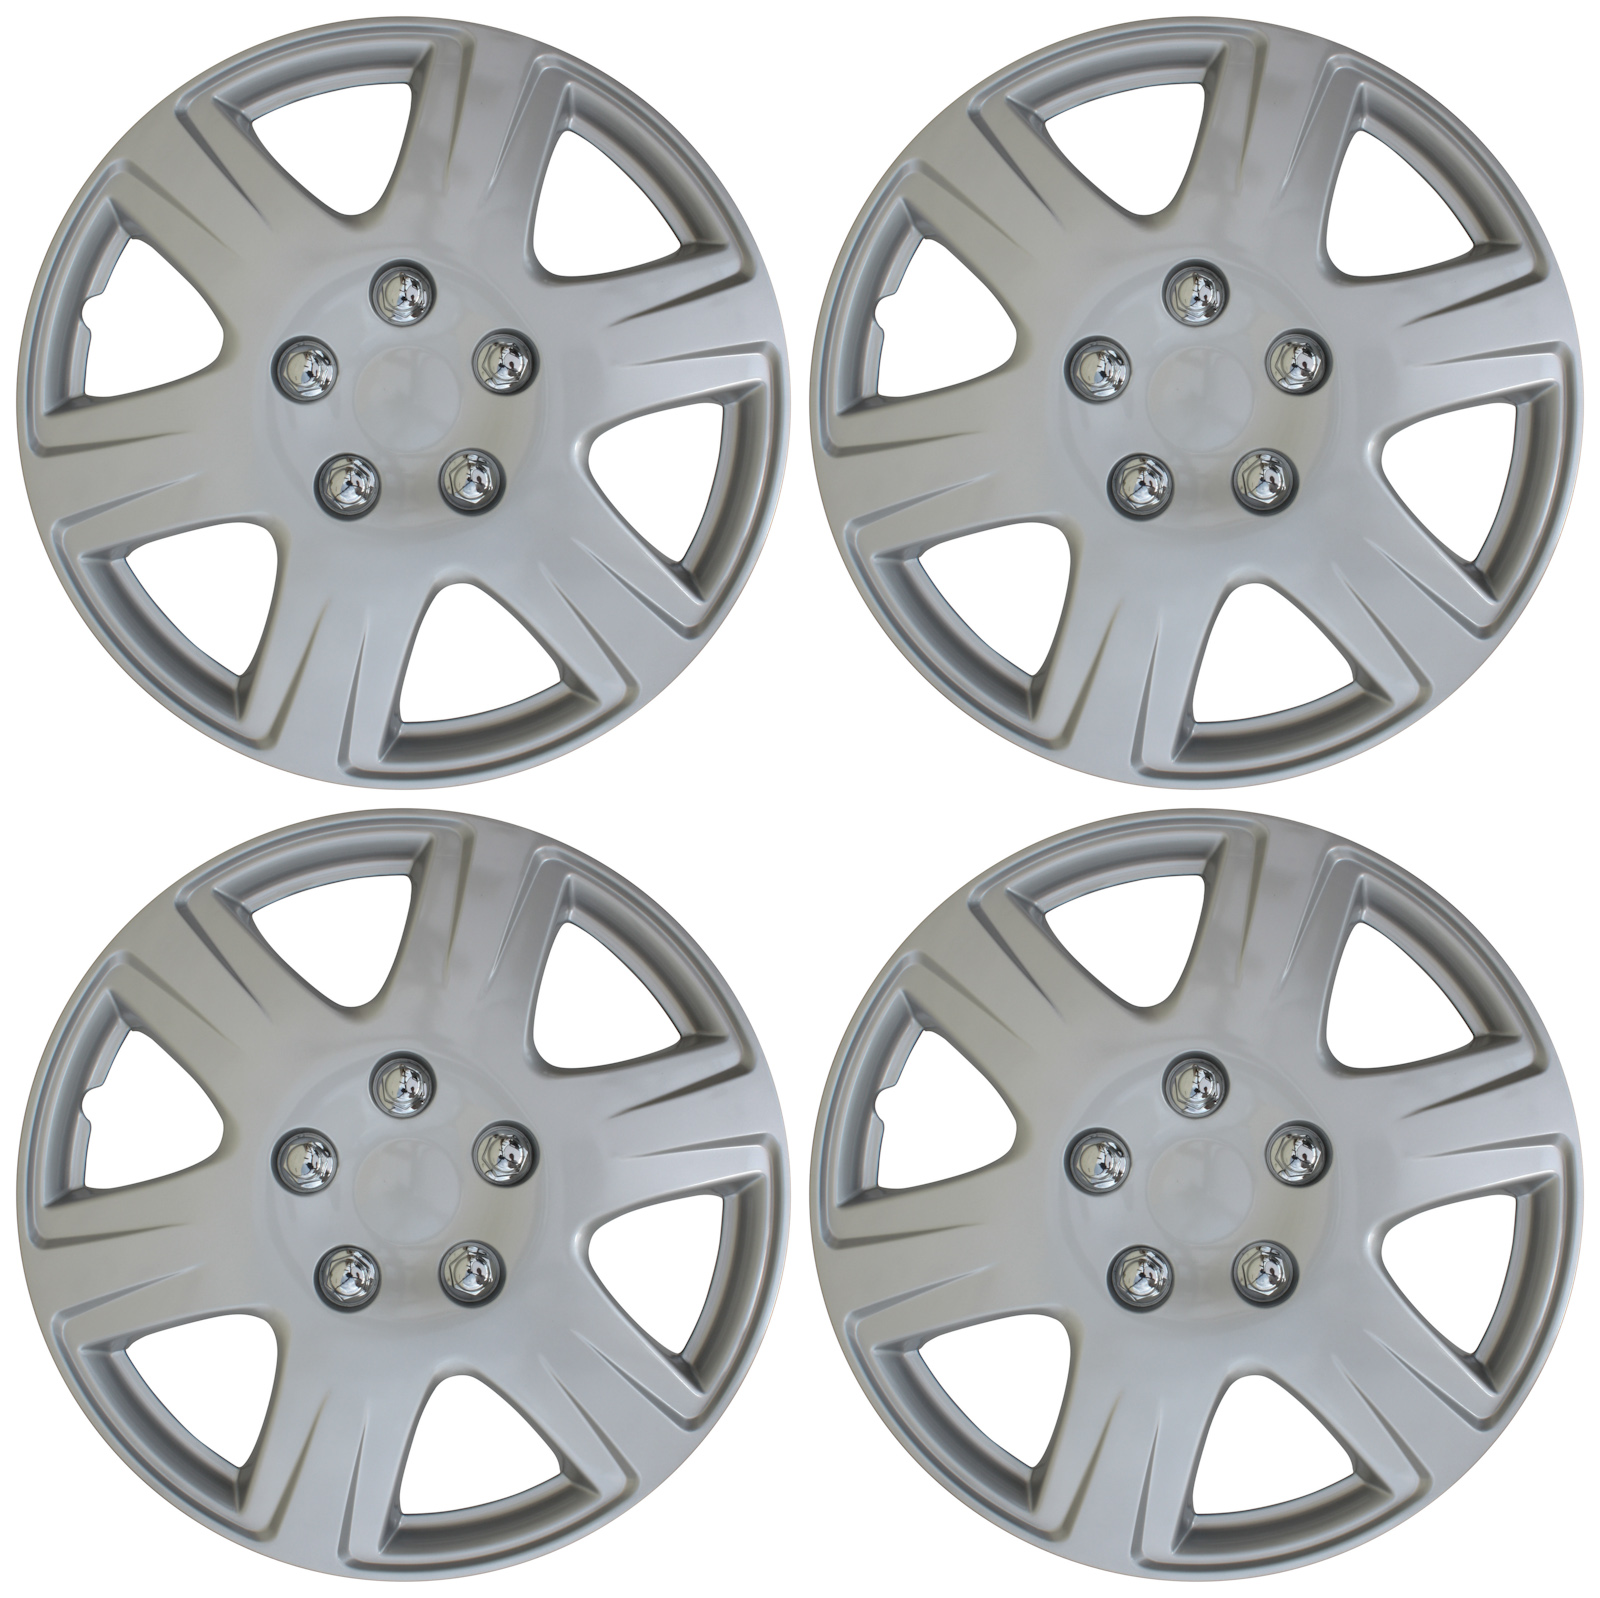 "4 pc NEW Universal HubCaps ABS Silver 15"" Inch Wheel Cover Hub Caps Covers Cap"